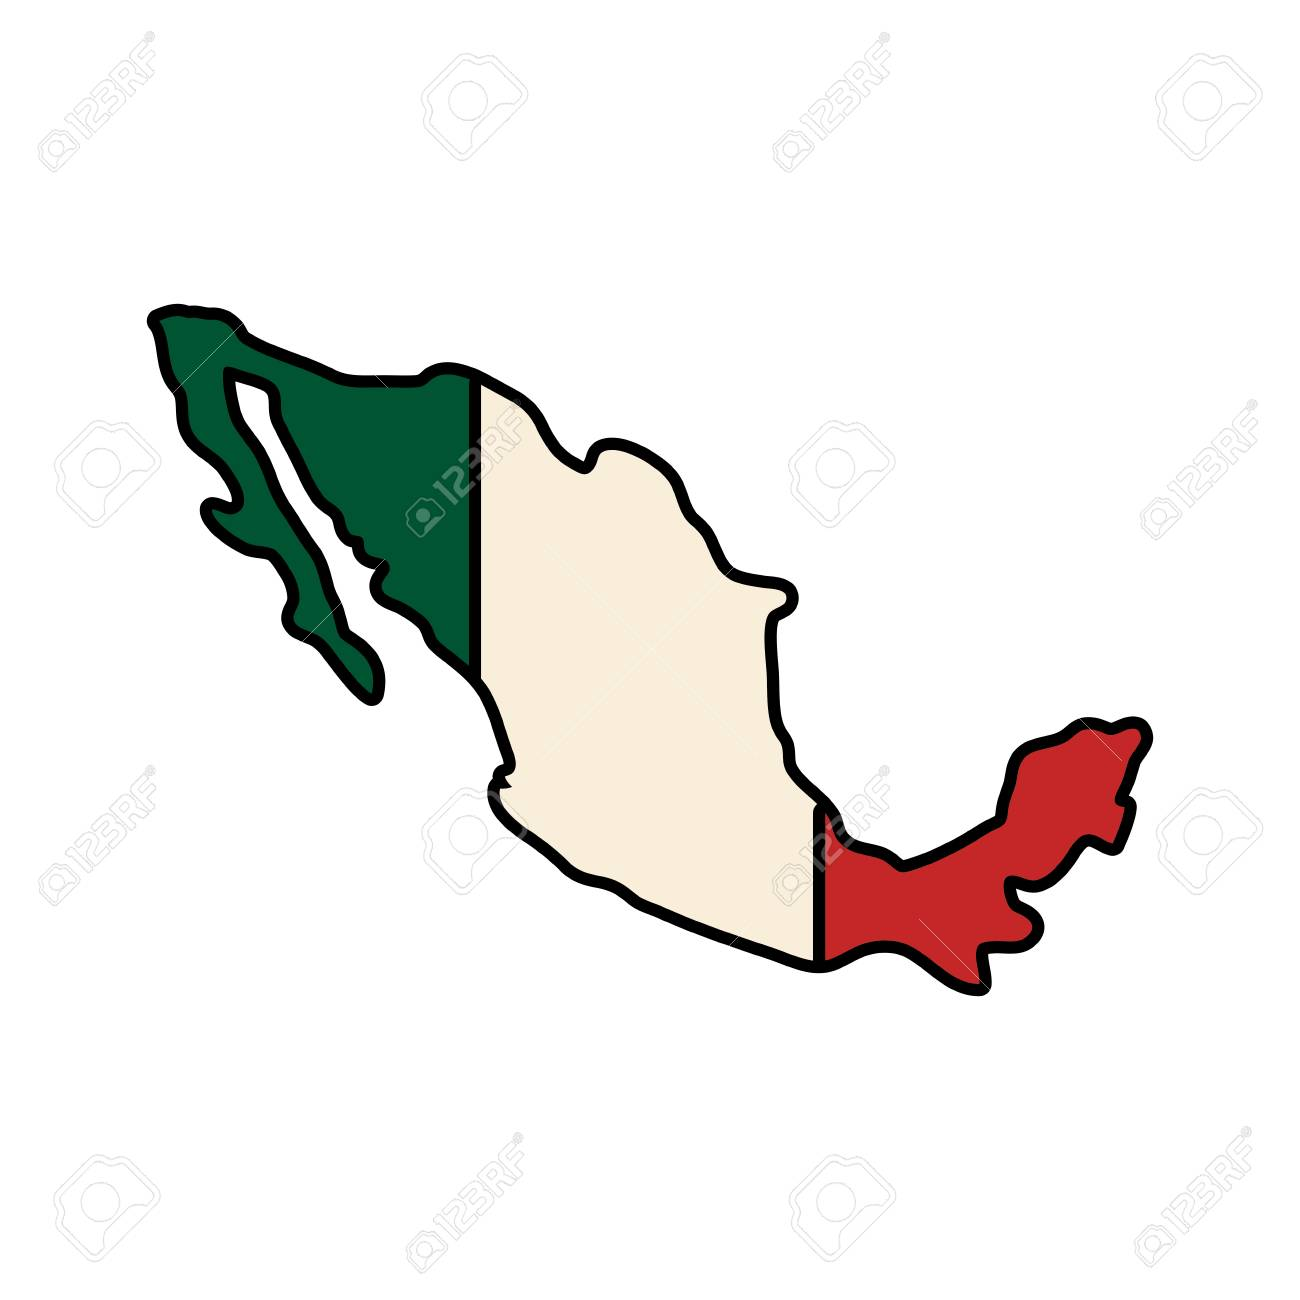 Mexico Map Flag Green White Red Icon Isolated And Flat Illustration